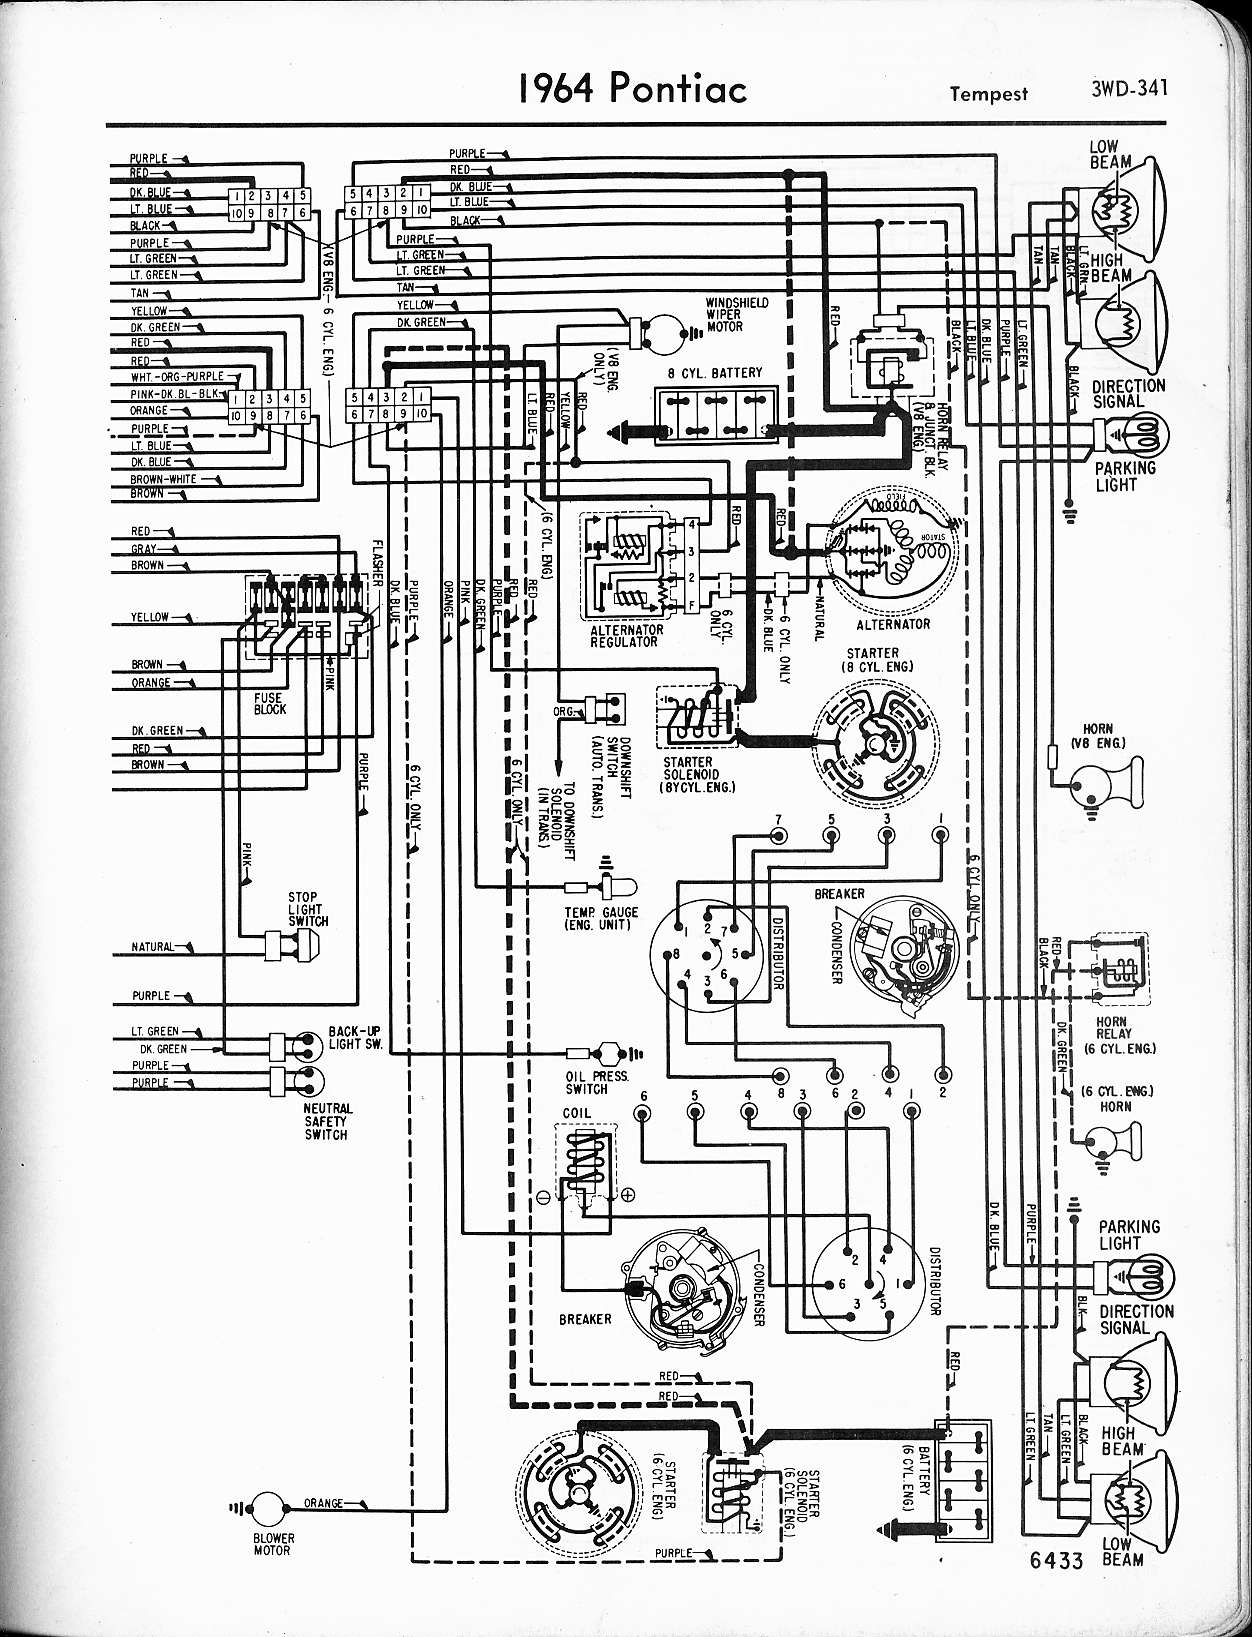 discovery 2 headlight wiring diagram word problems involving venn harnes for 1999 neon database gto wire 6 12 kenmo lp de 67 tach rh 41